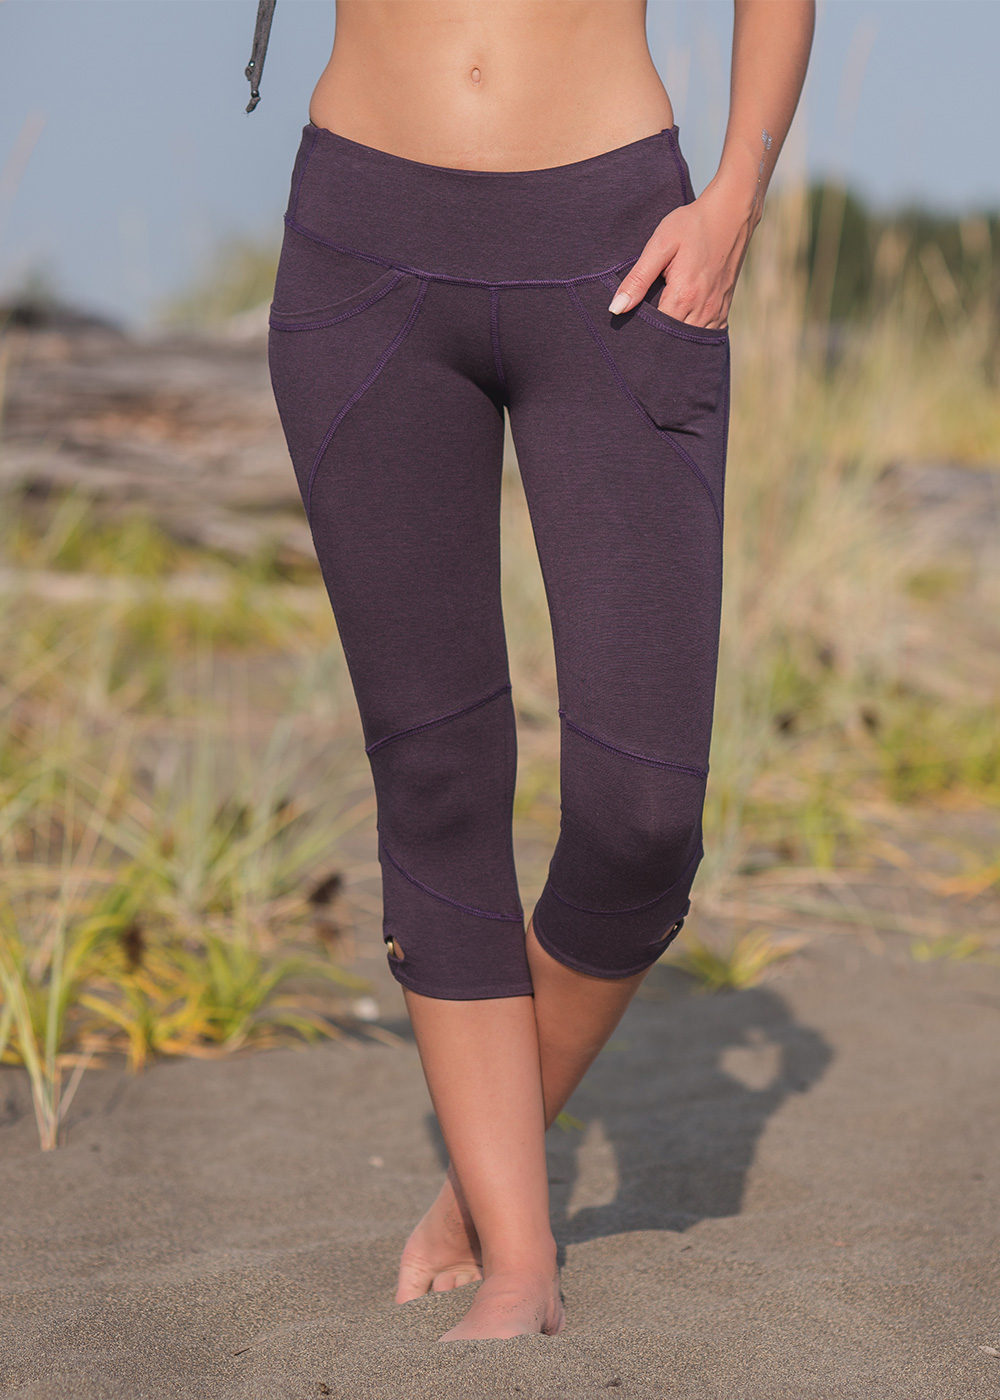 Lotus Yoga Leggings in Organic Cotton & Bamboo - Nomads Hemp Wear